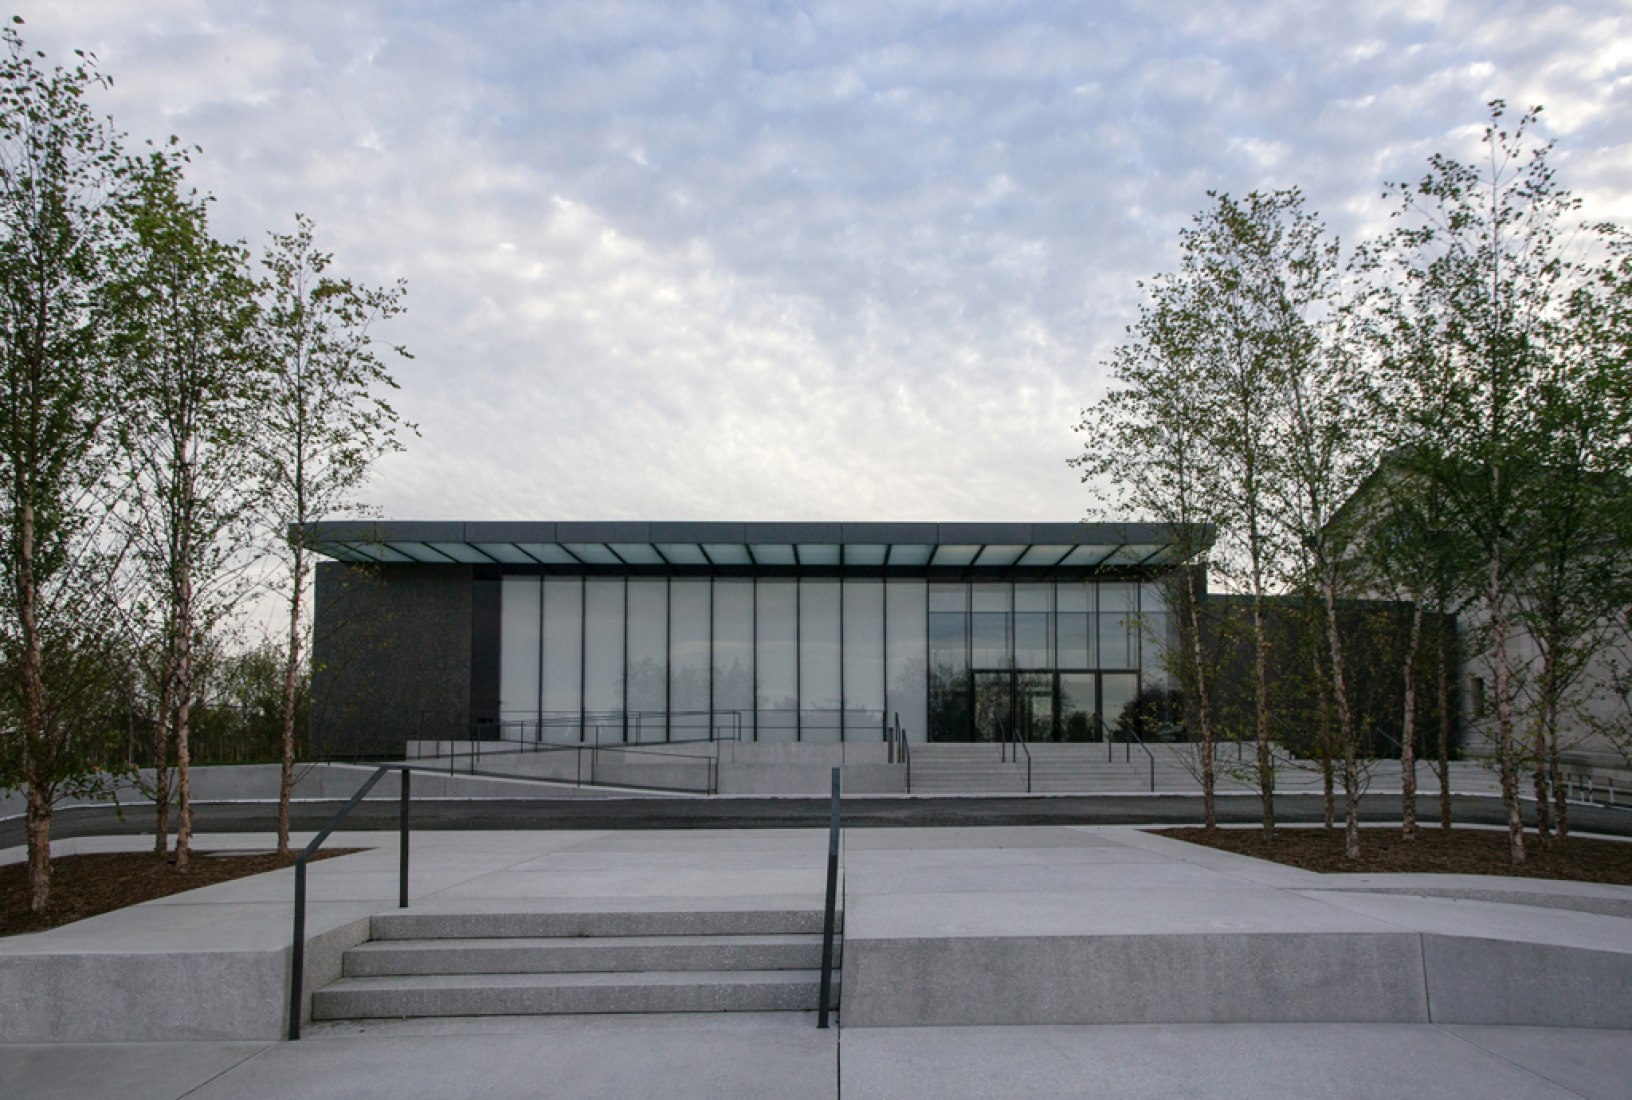 The new East Building seen from Fine Arts Drive (North facade). Image courtesy of the Saint Louis Art Museum and Architectural Wall Systems. Photograph © Jacob Sharp.